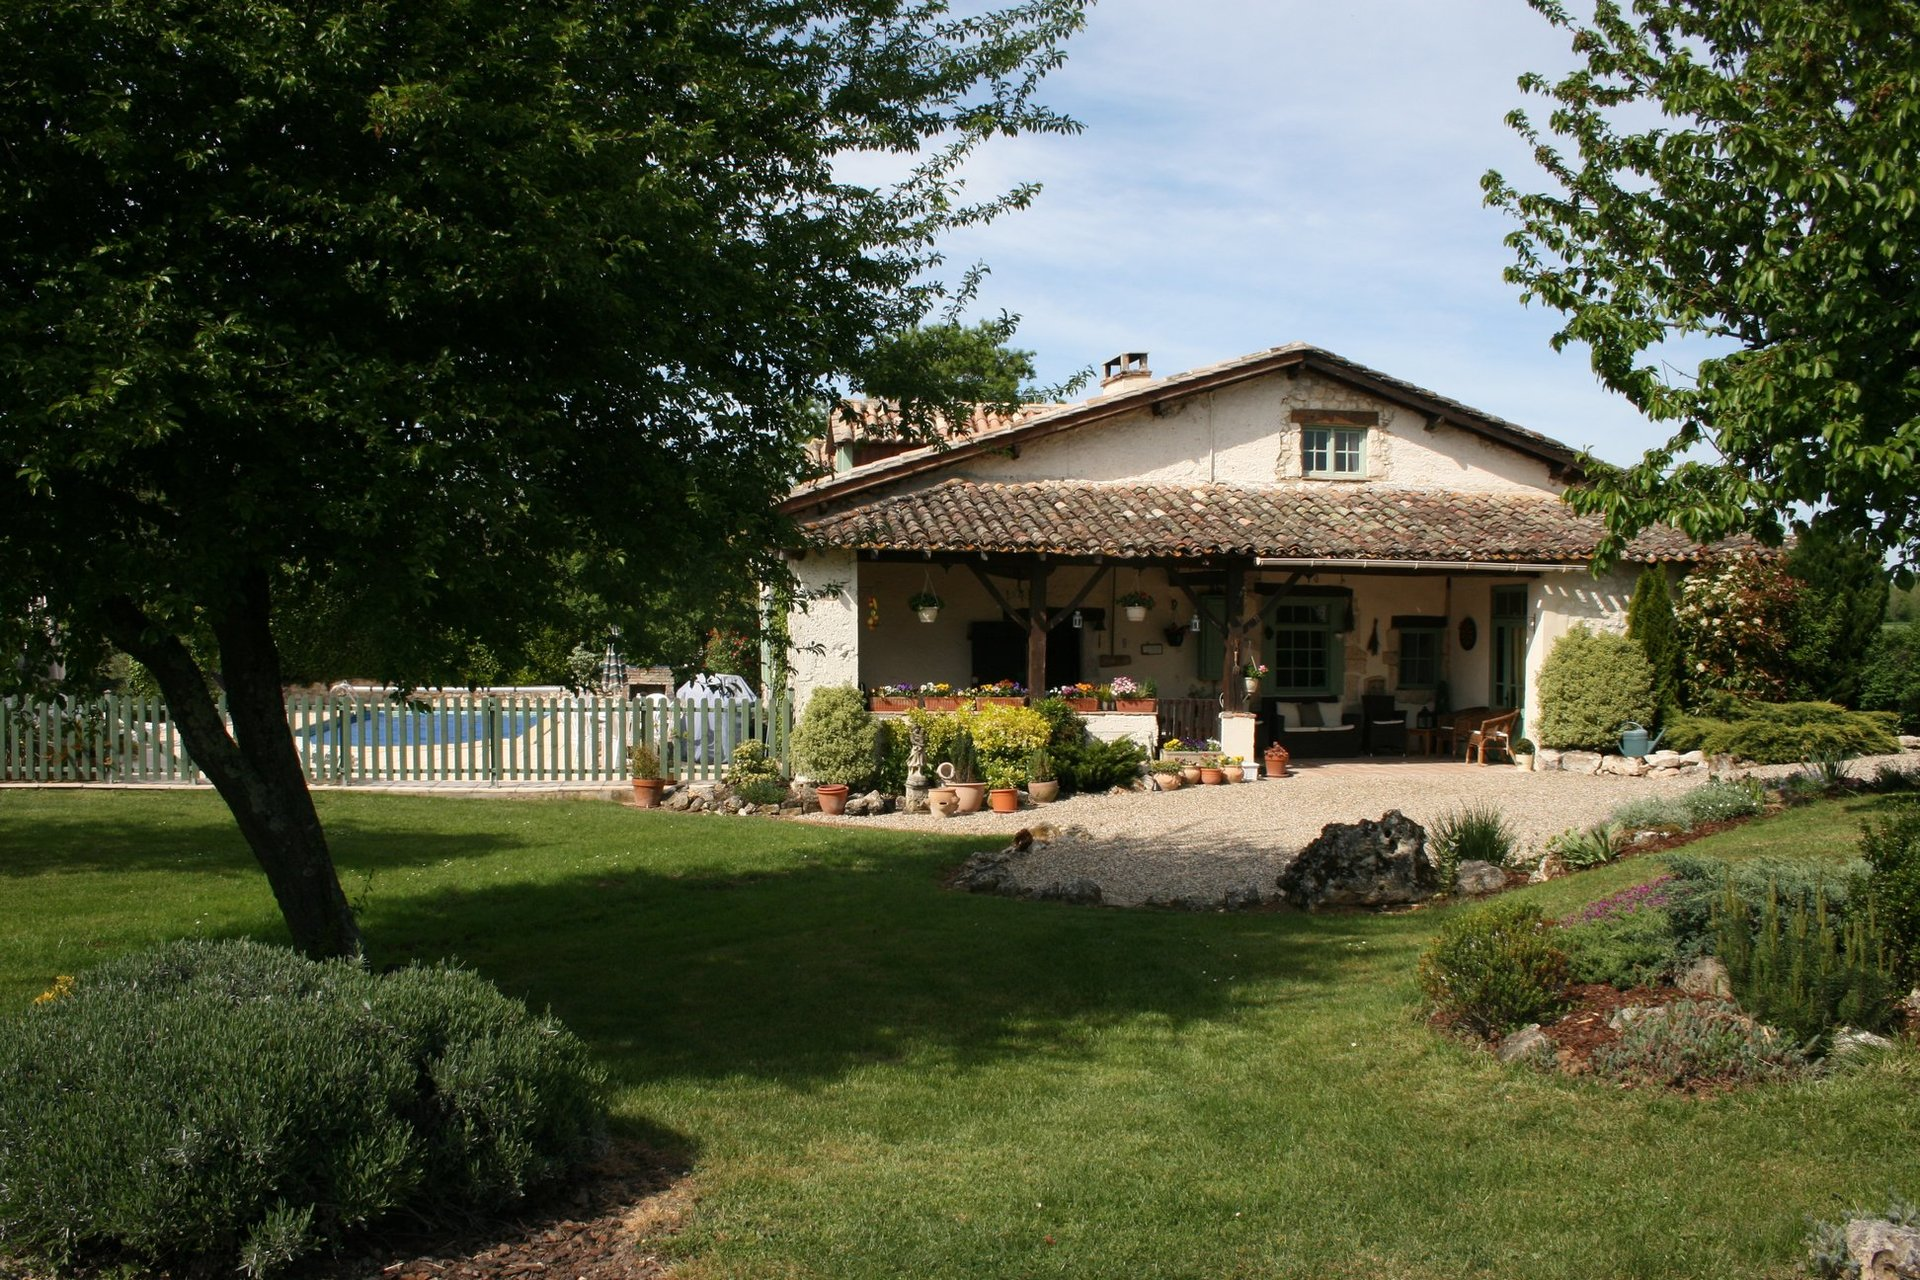 4 bed cottage with 2 gites, pool, mature garden in quiet hamlet near Bergerac